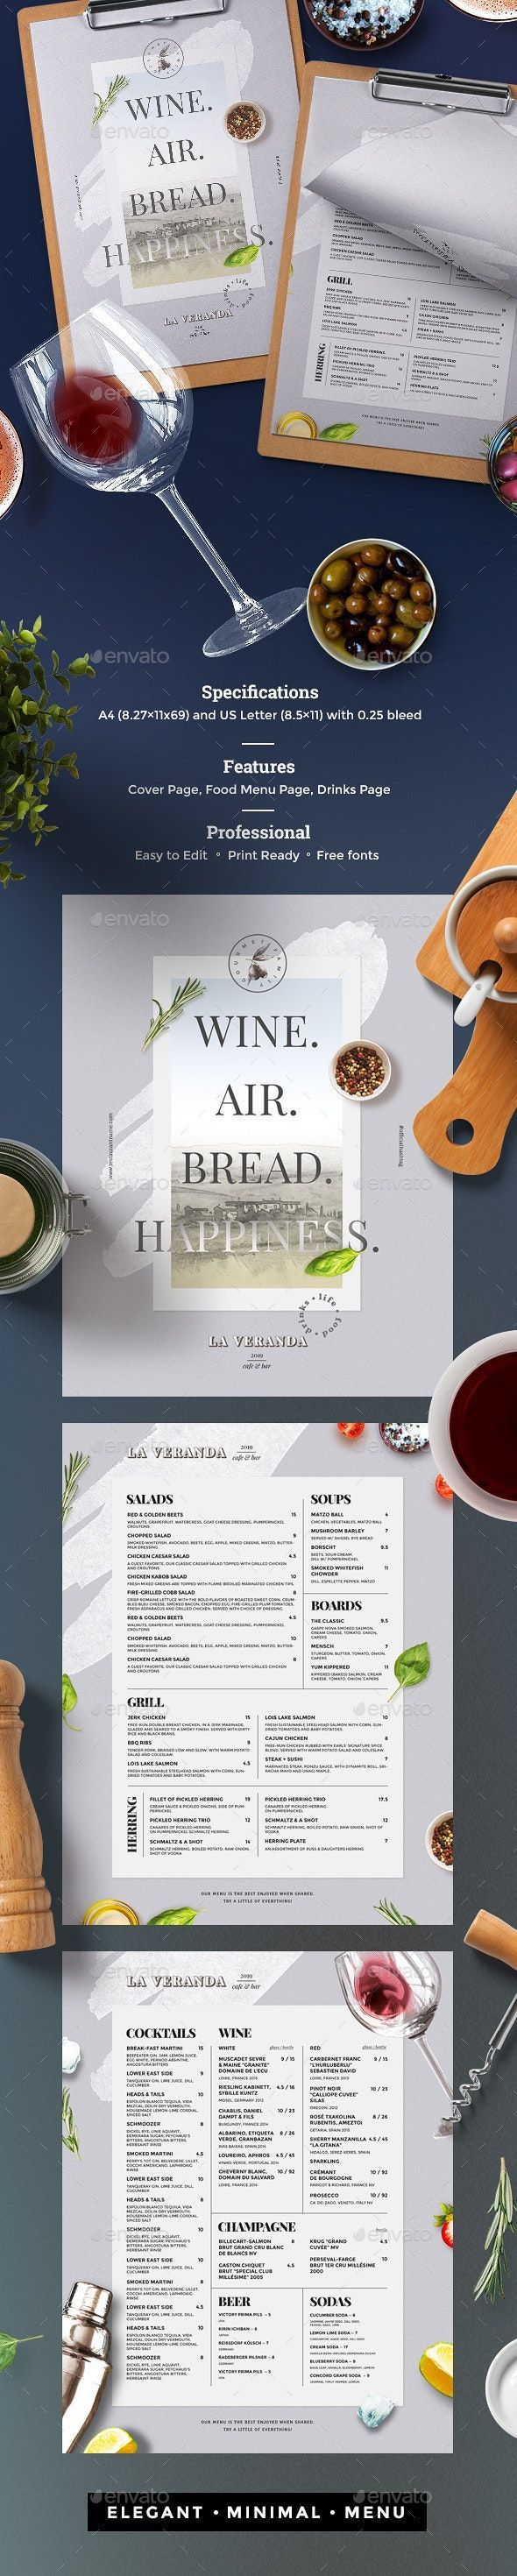 Templates For Restaurant Menus Free